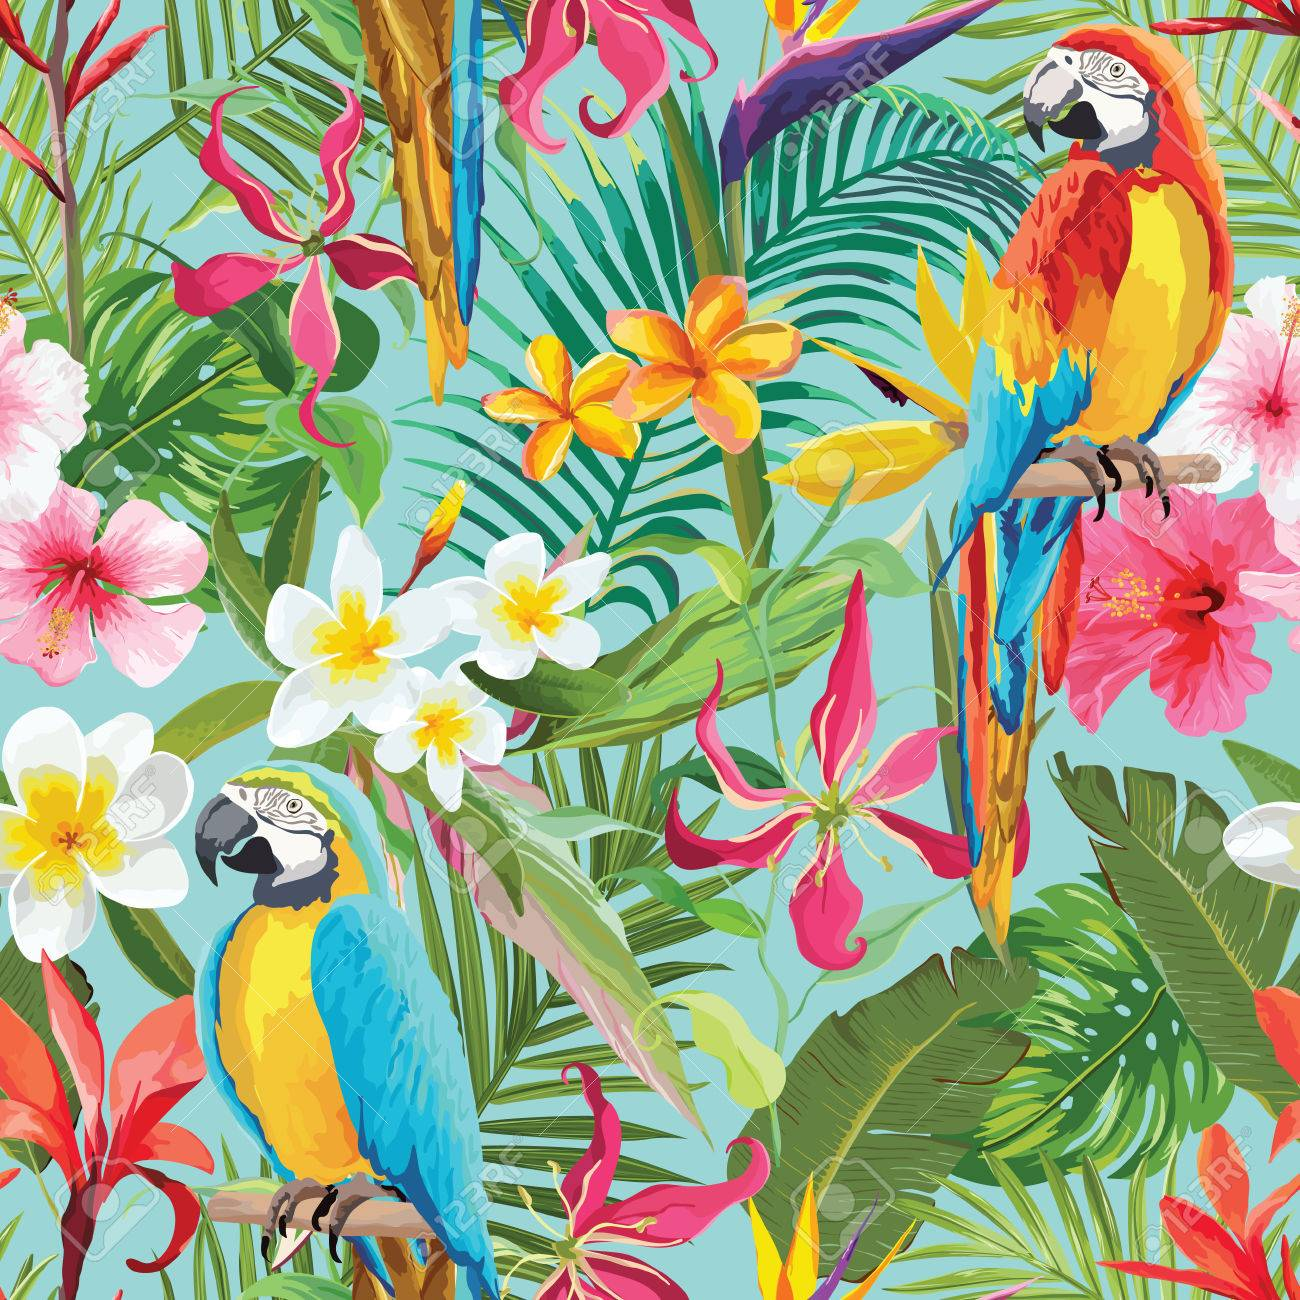 Tropical Flowers And Parrots Seamless Vector Floral Summer Pattern Royalty Free Cliparts Vectors And Stock Illustration Image 82660663